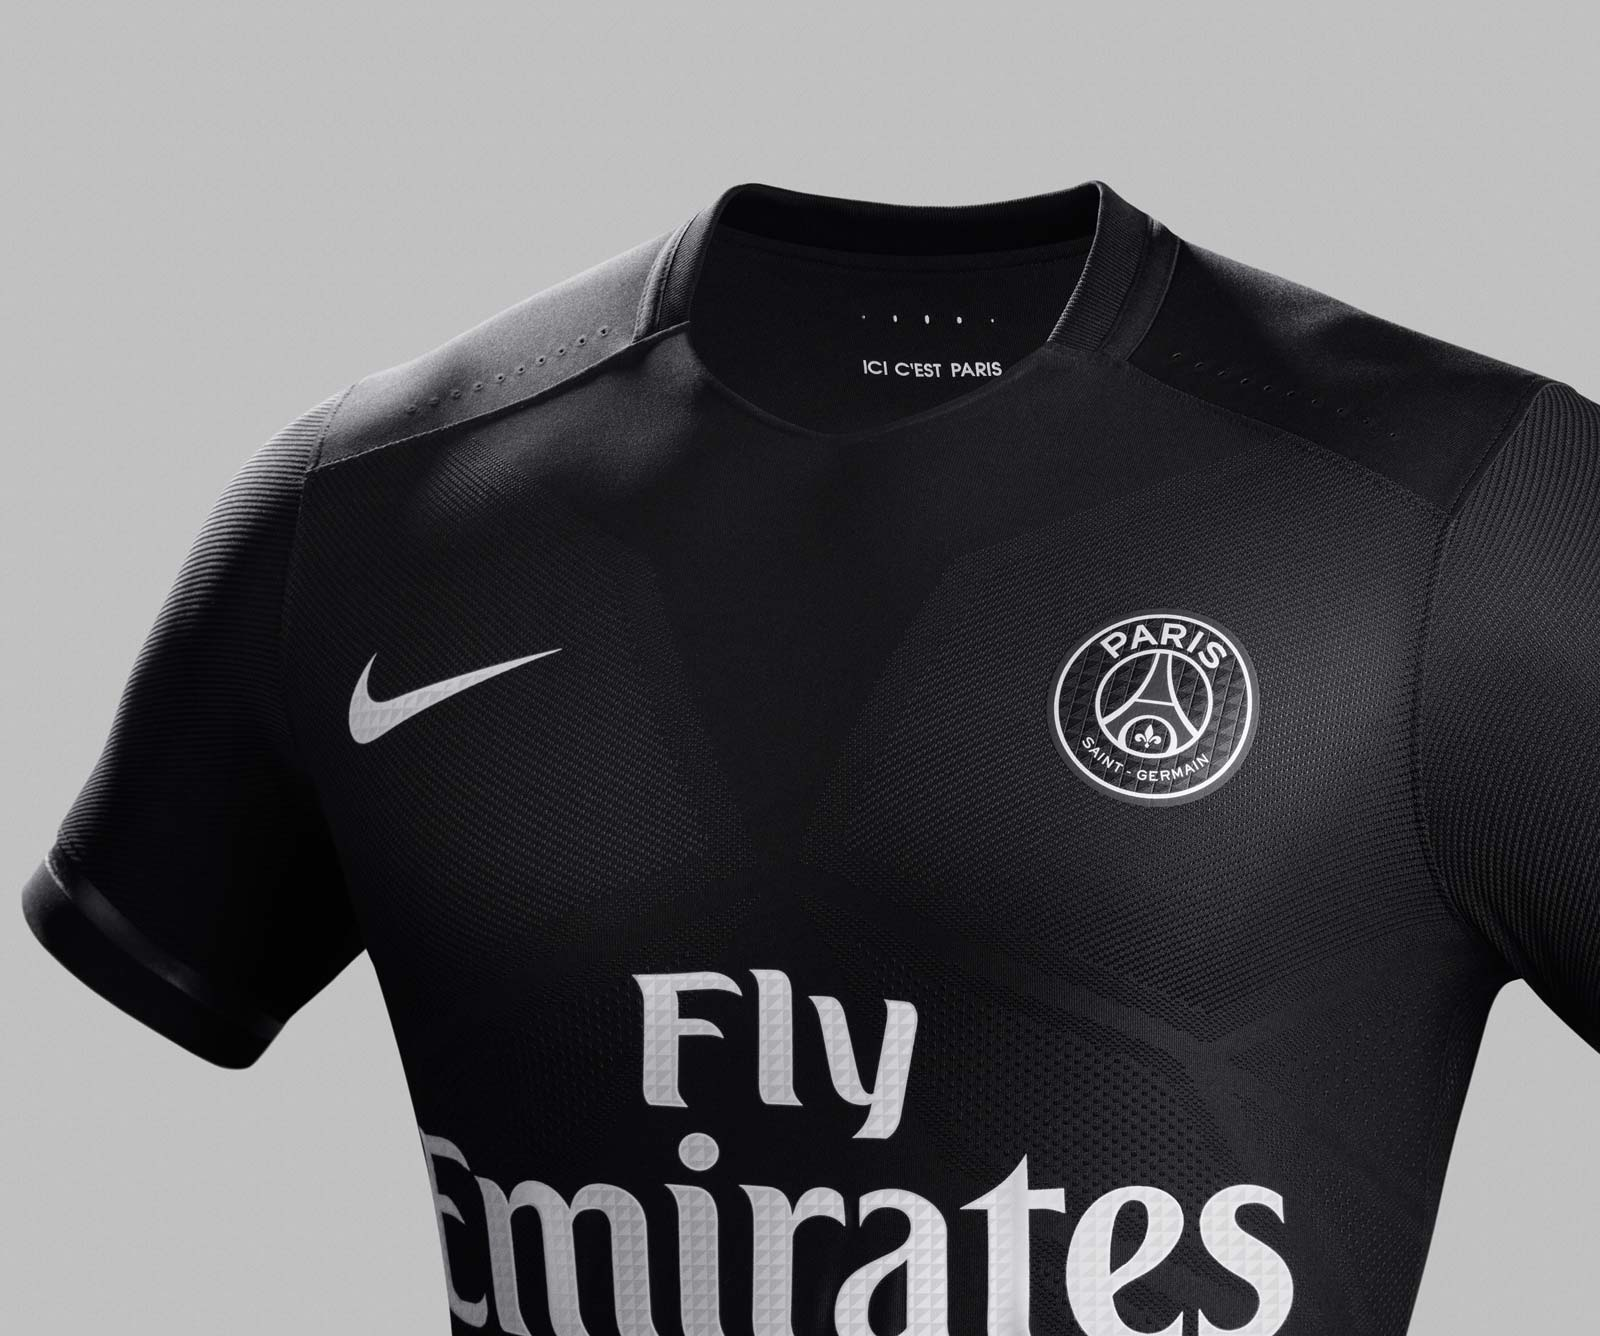 Psg black and pink jersey - Paris Saint Germain 15 16 Champions League Home Kit Released